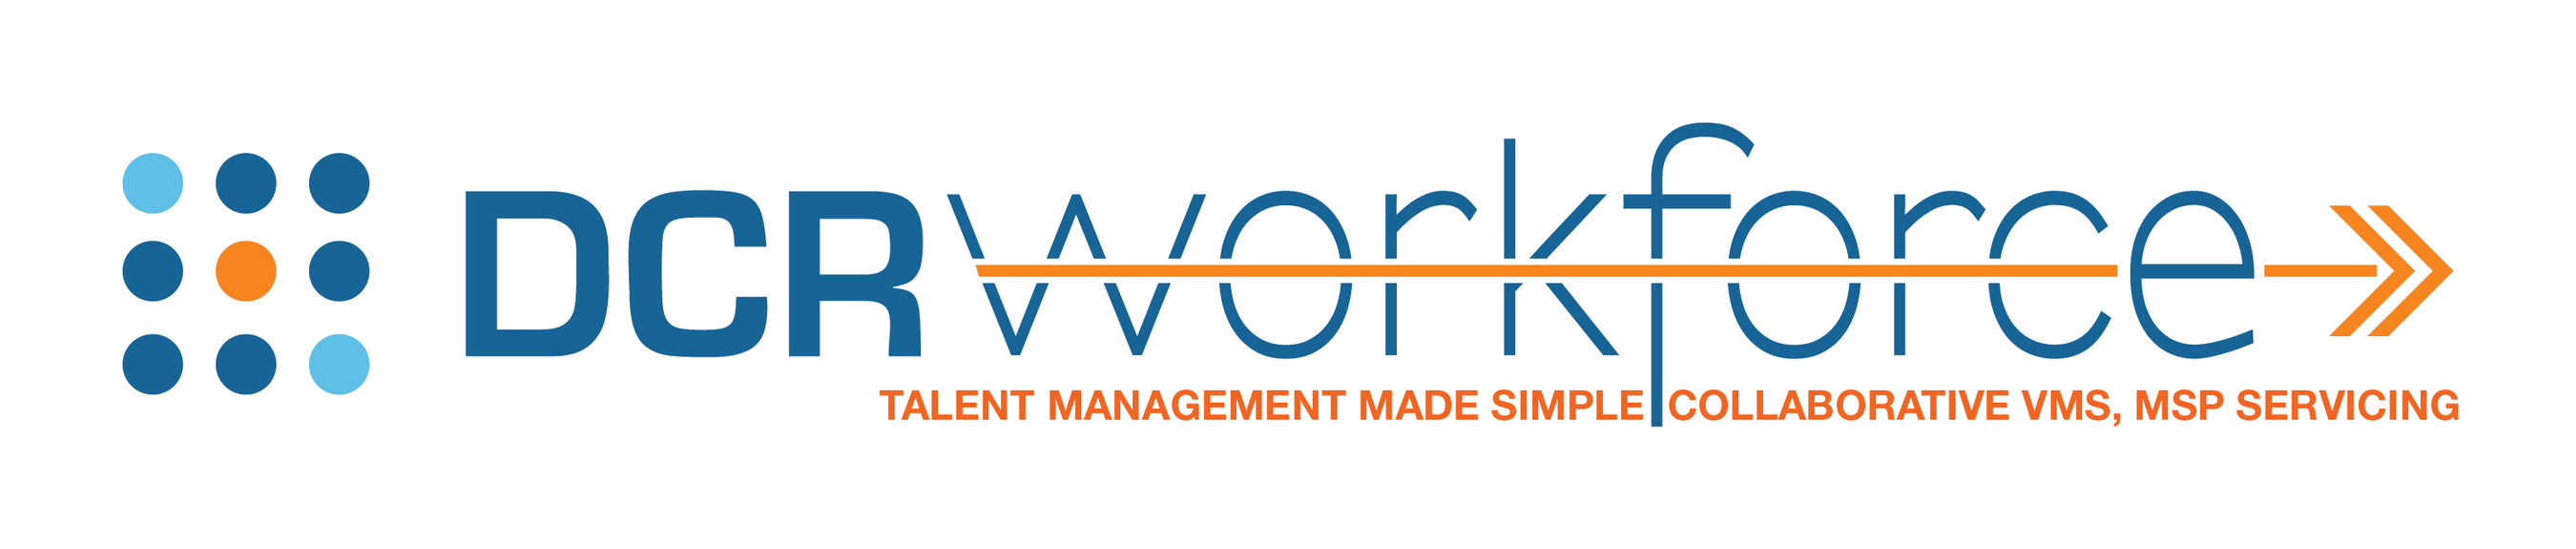 DCR Workforce combines technology and services to enable companies to manage their non-employees in ways that ...